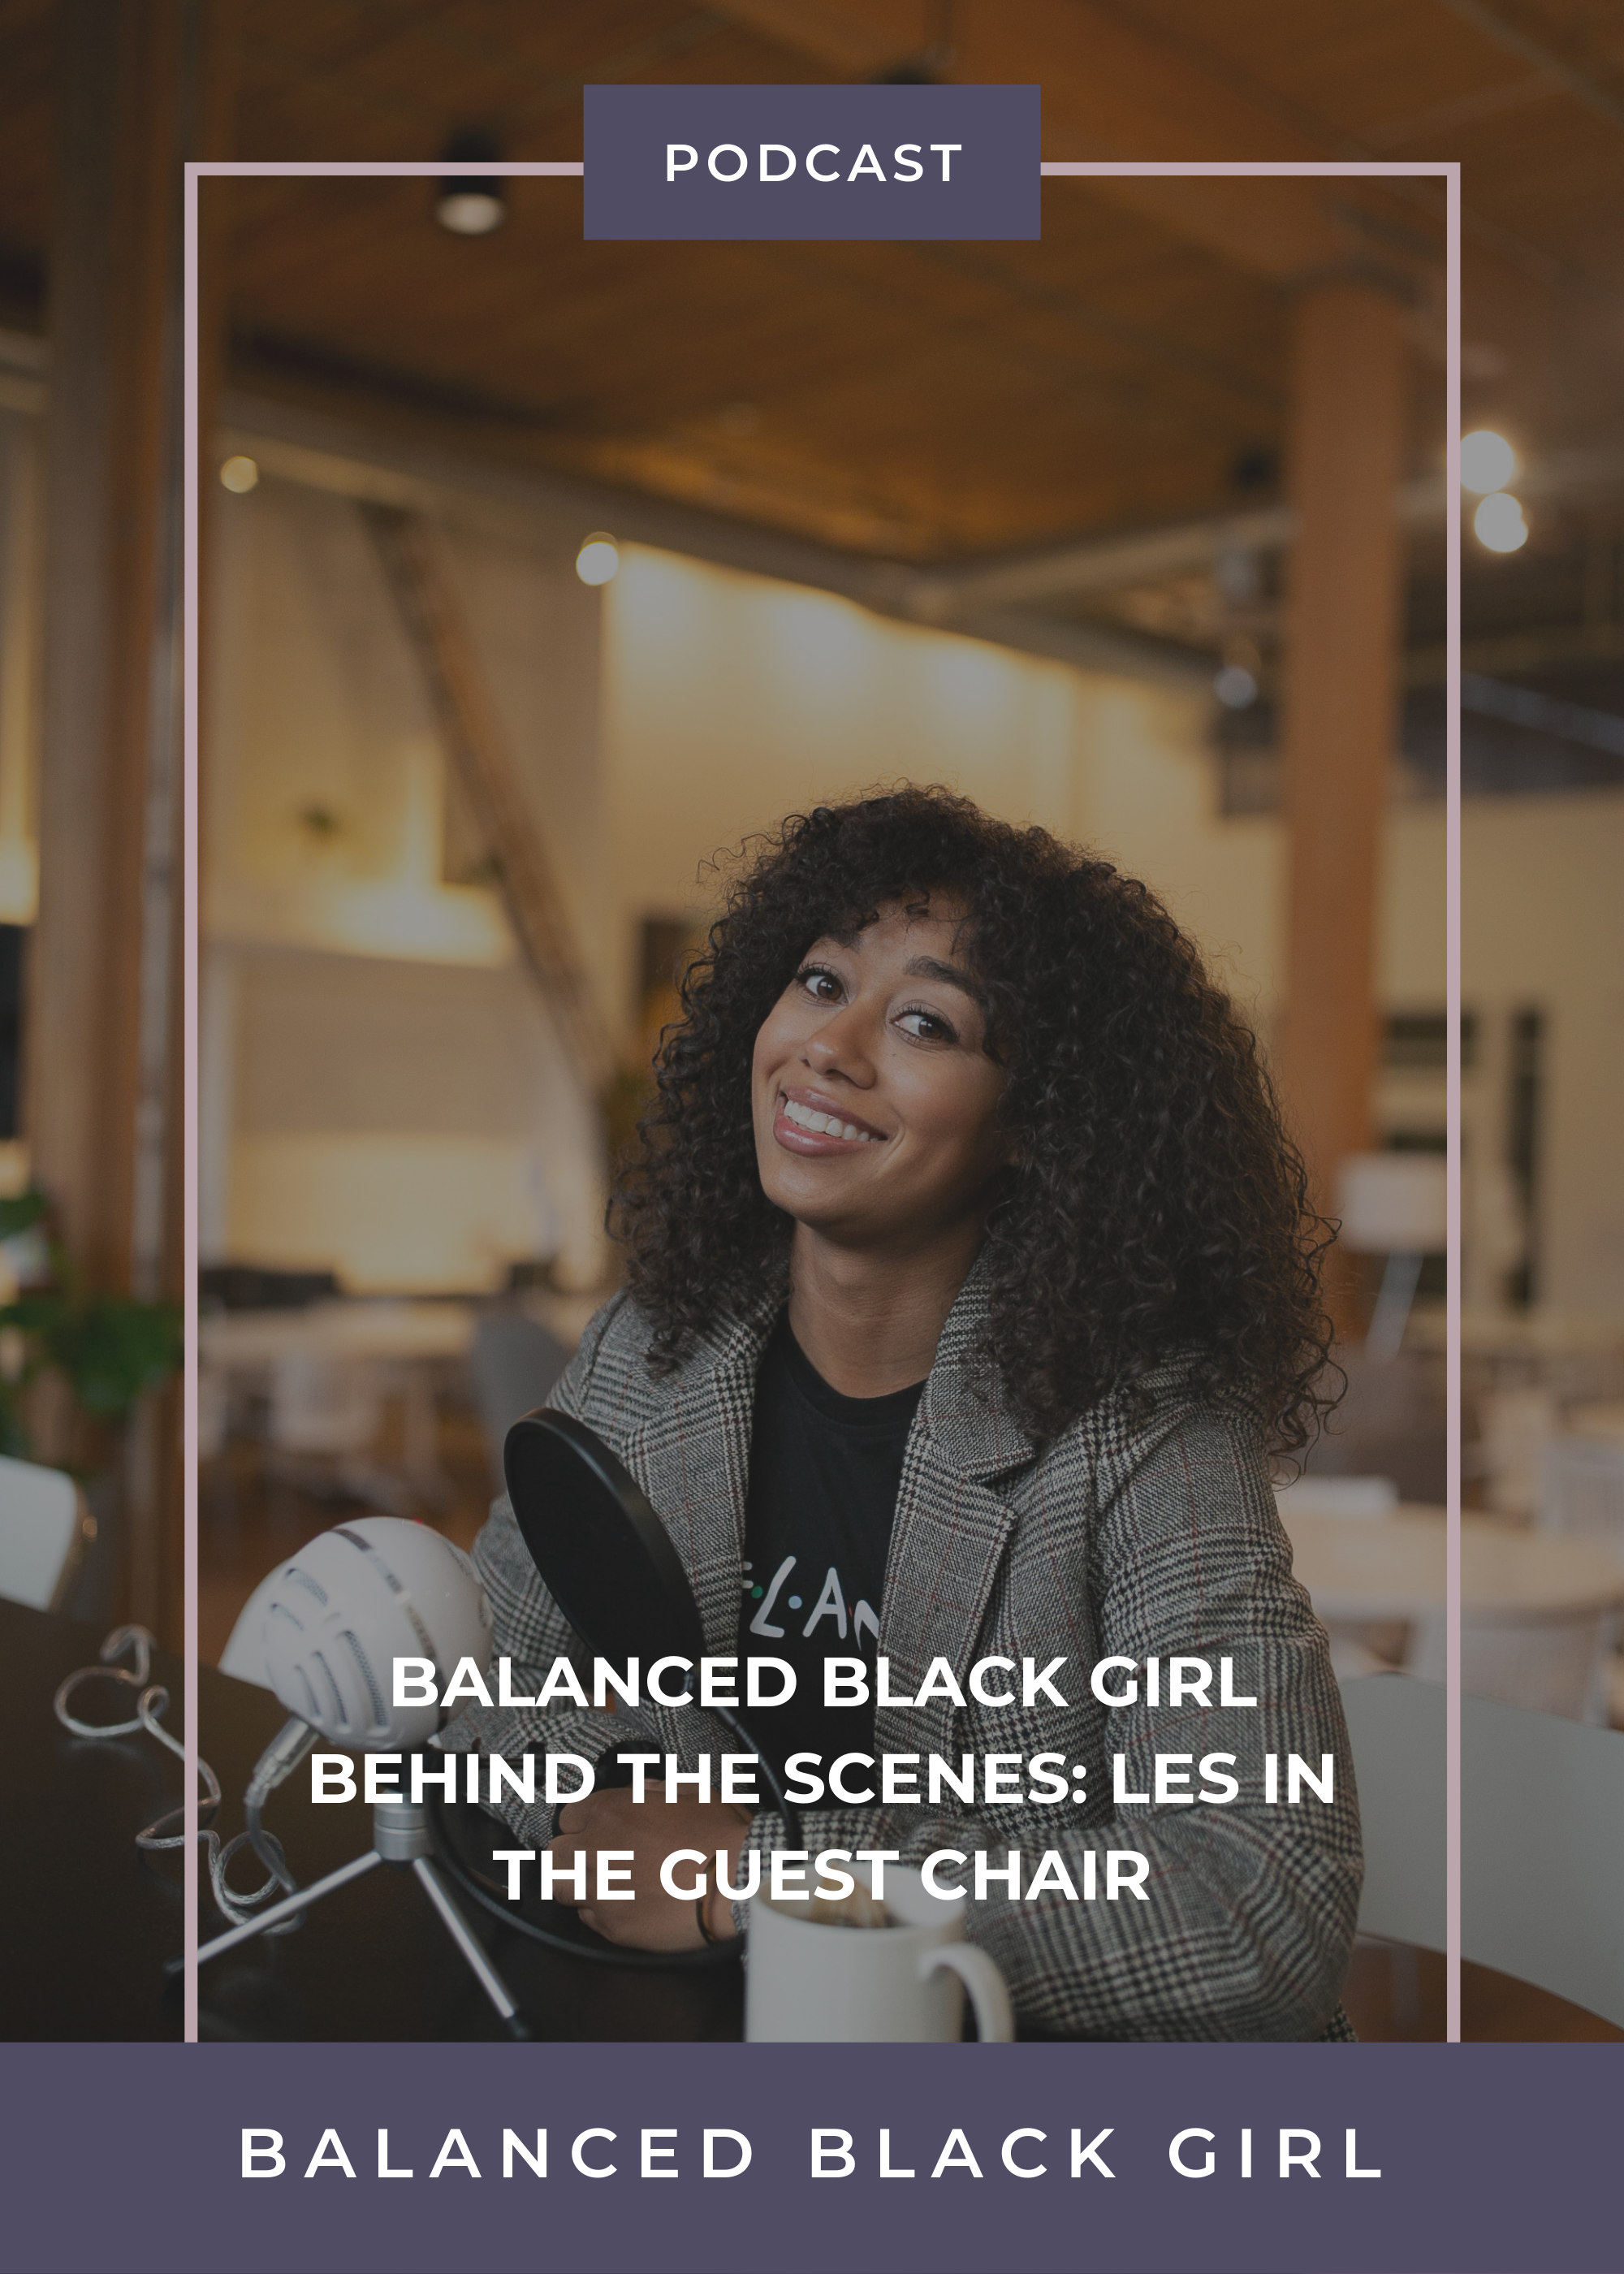 Episode 37: Balanced Black Girl Behind the Scenes